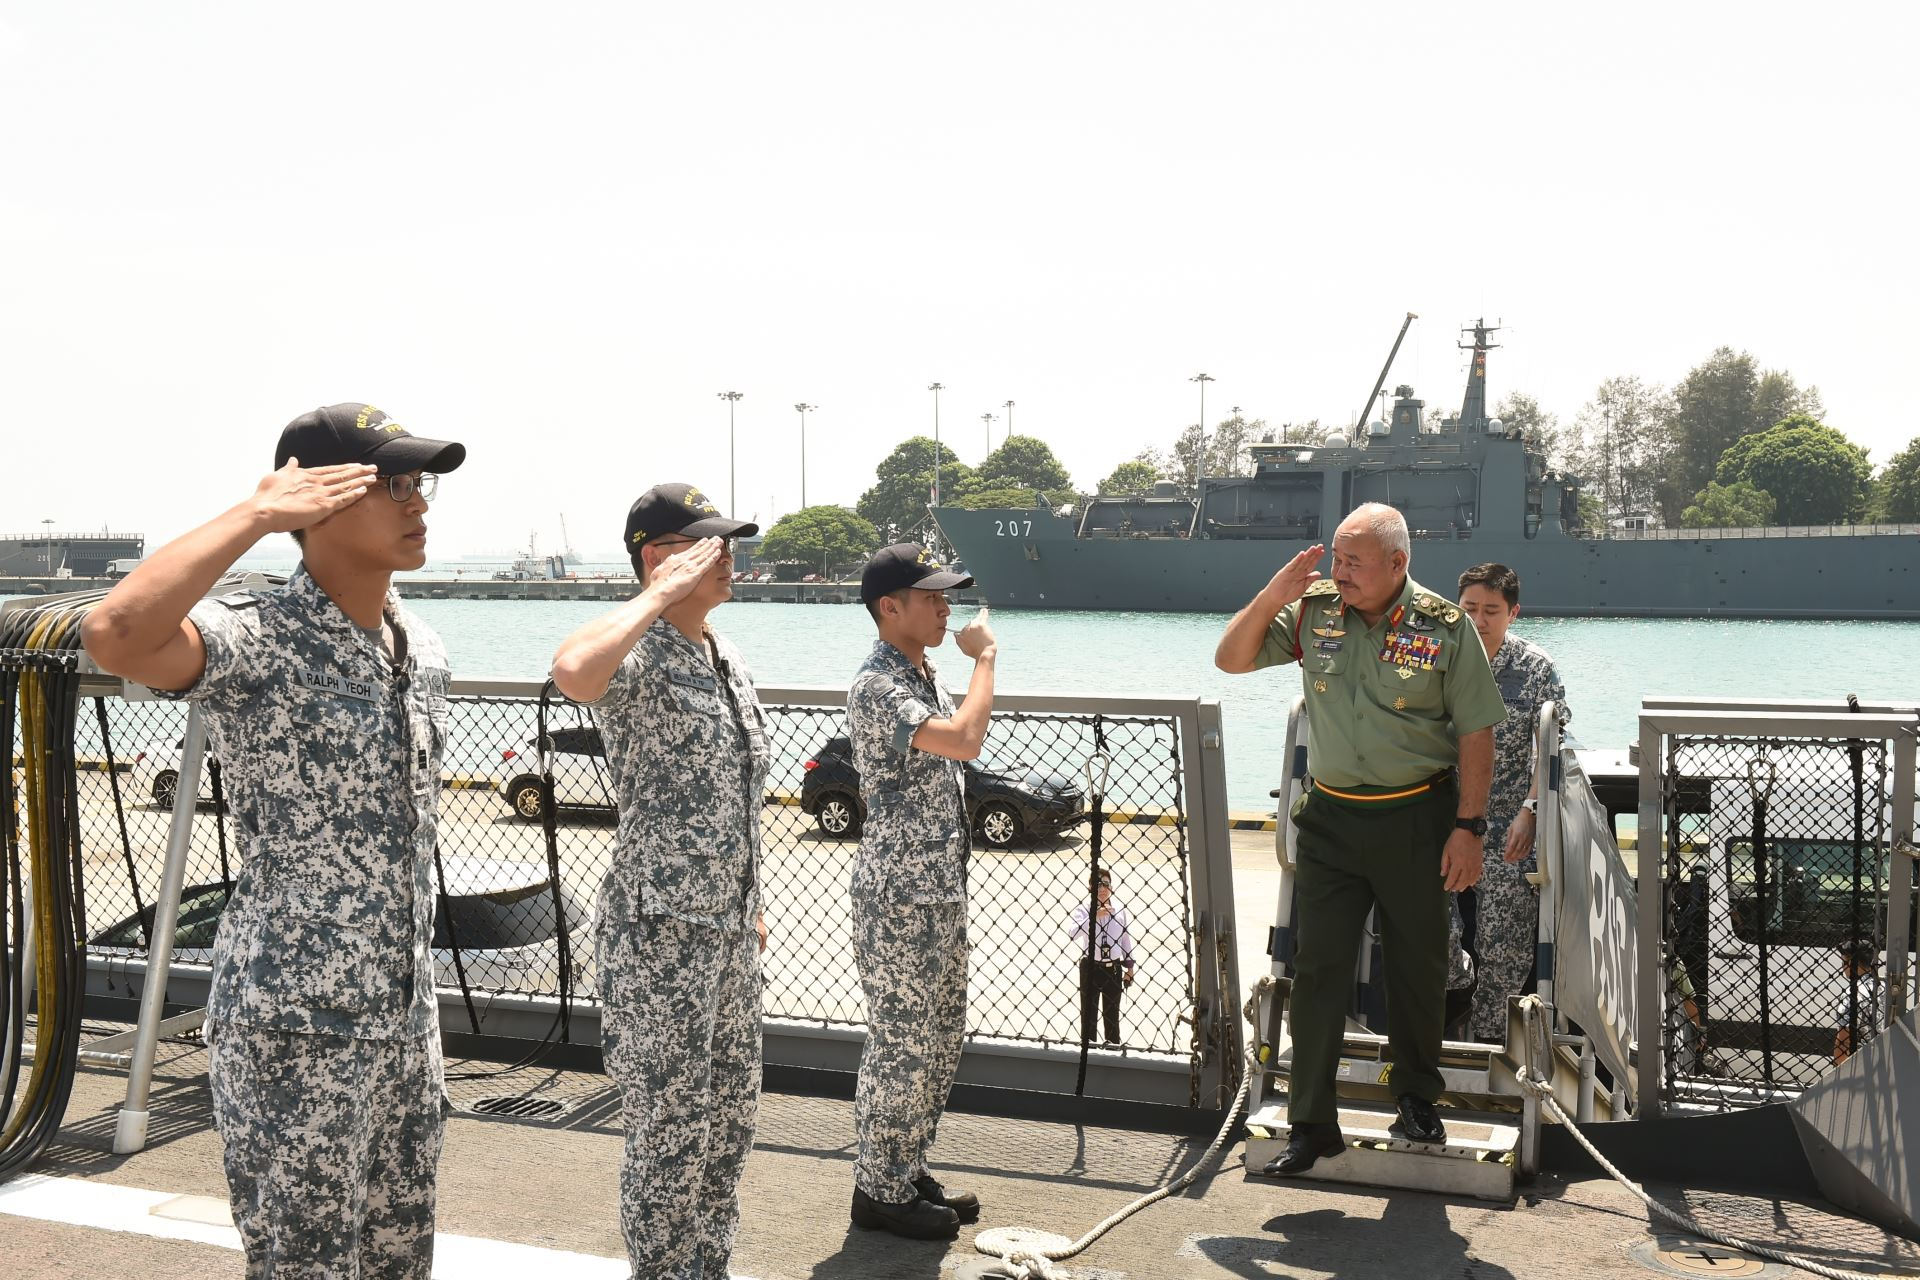 GEN Zulkifli (right) boarding the Formidable-class frigate RSS Steadfast during his visit to Changi Naval Base.